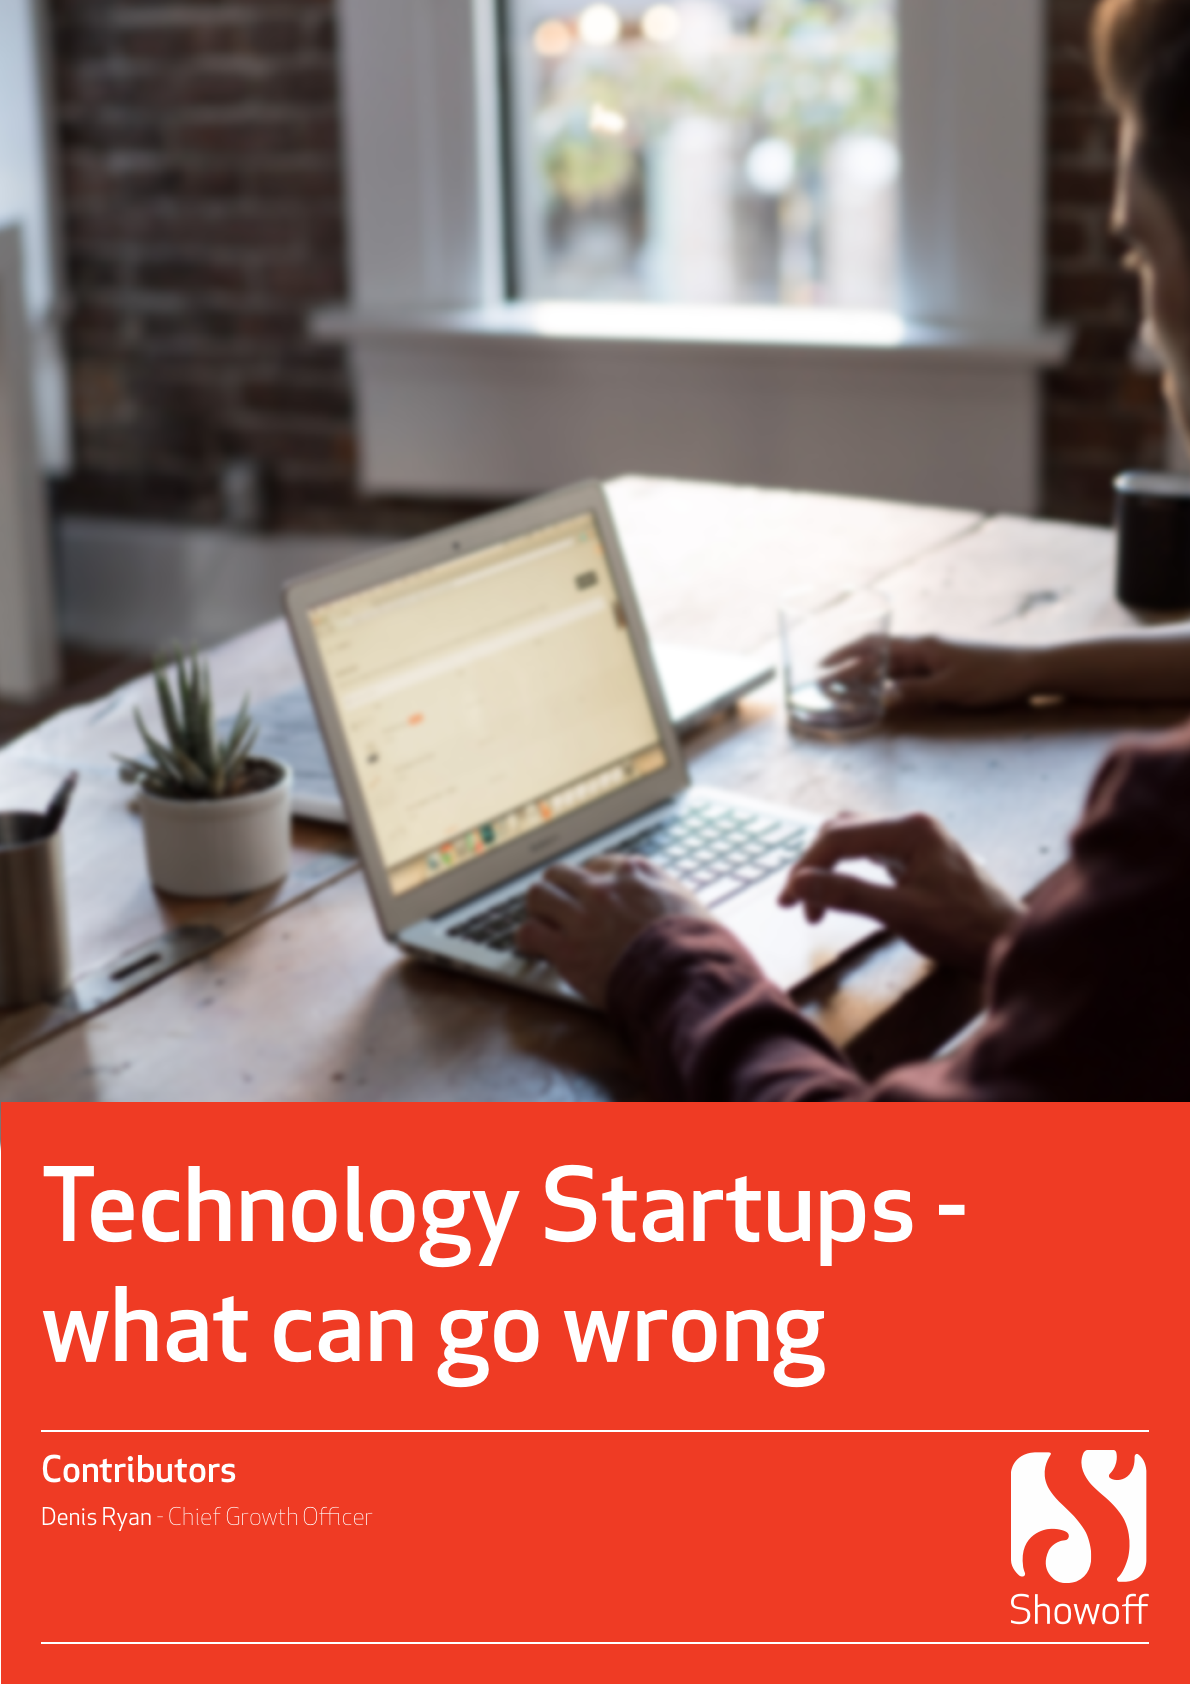 Technology Startups - What can go wrong Illustration